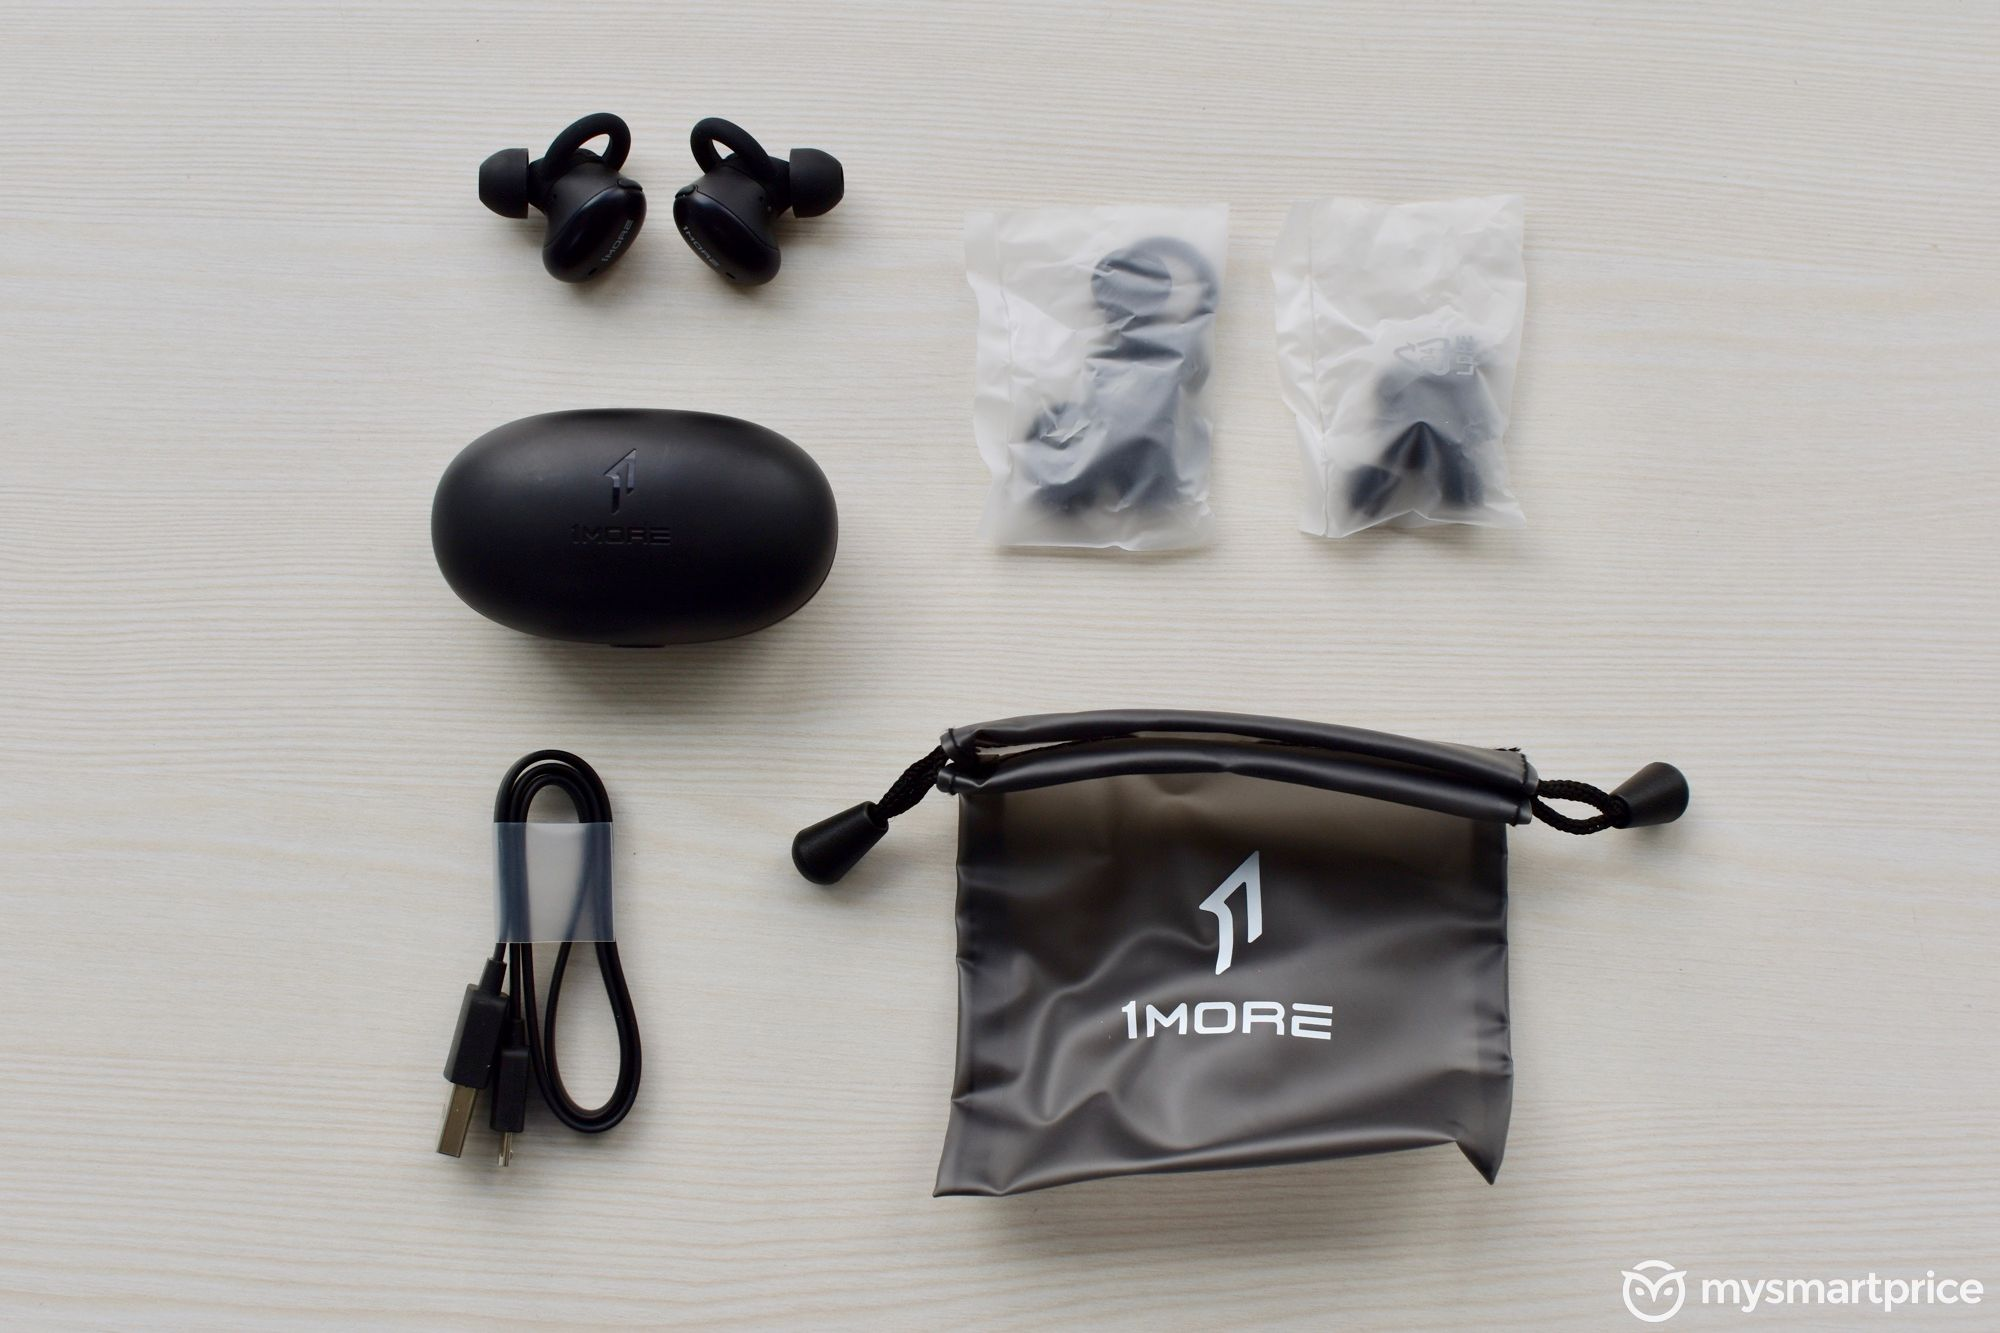 1More Stylish True Wireless Earbuds Bundled Accessories